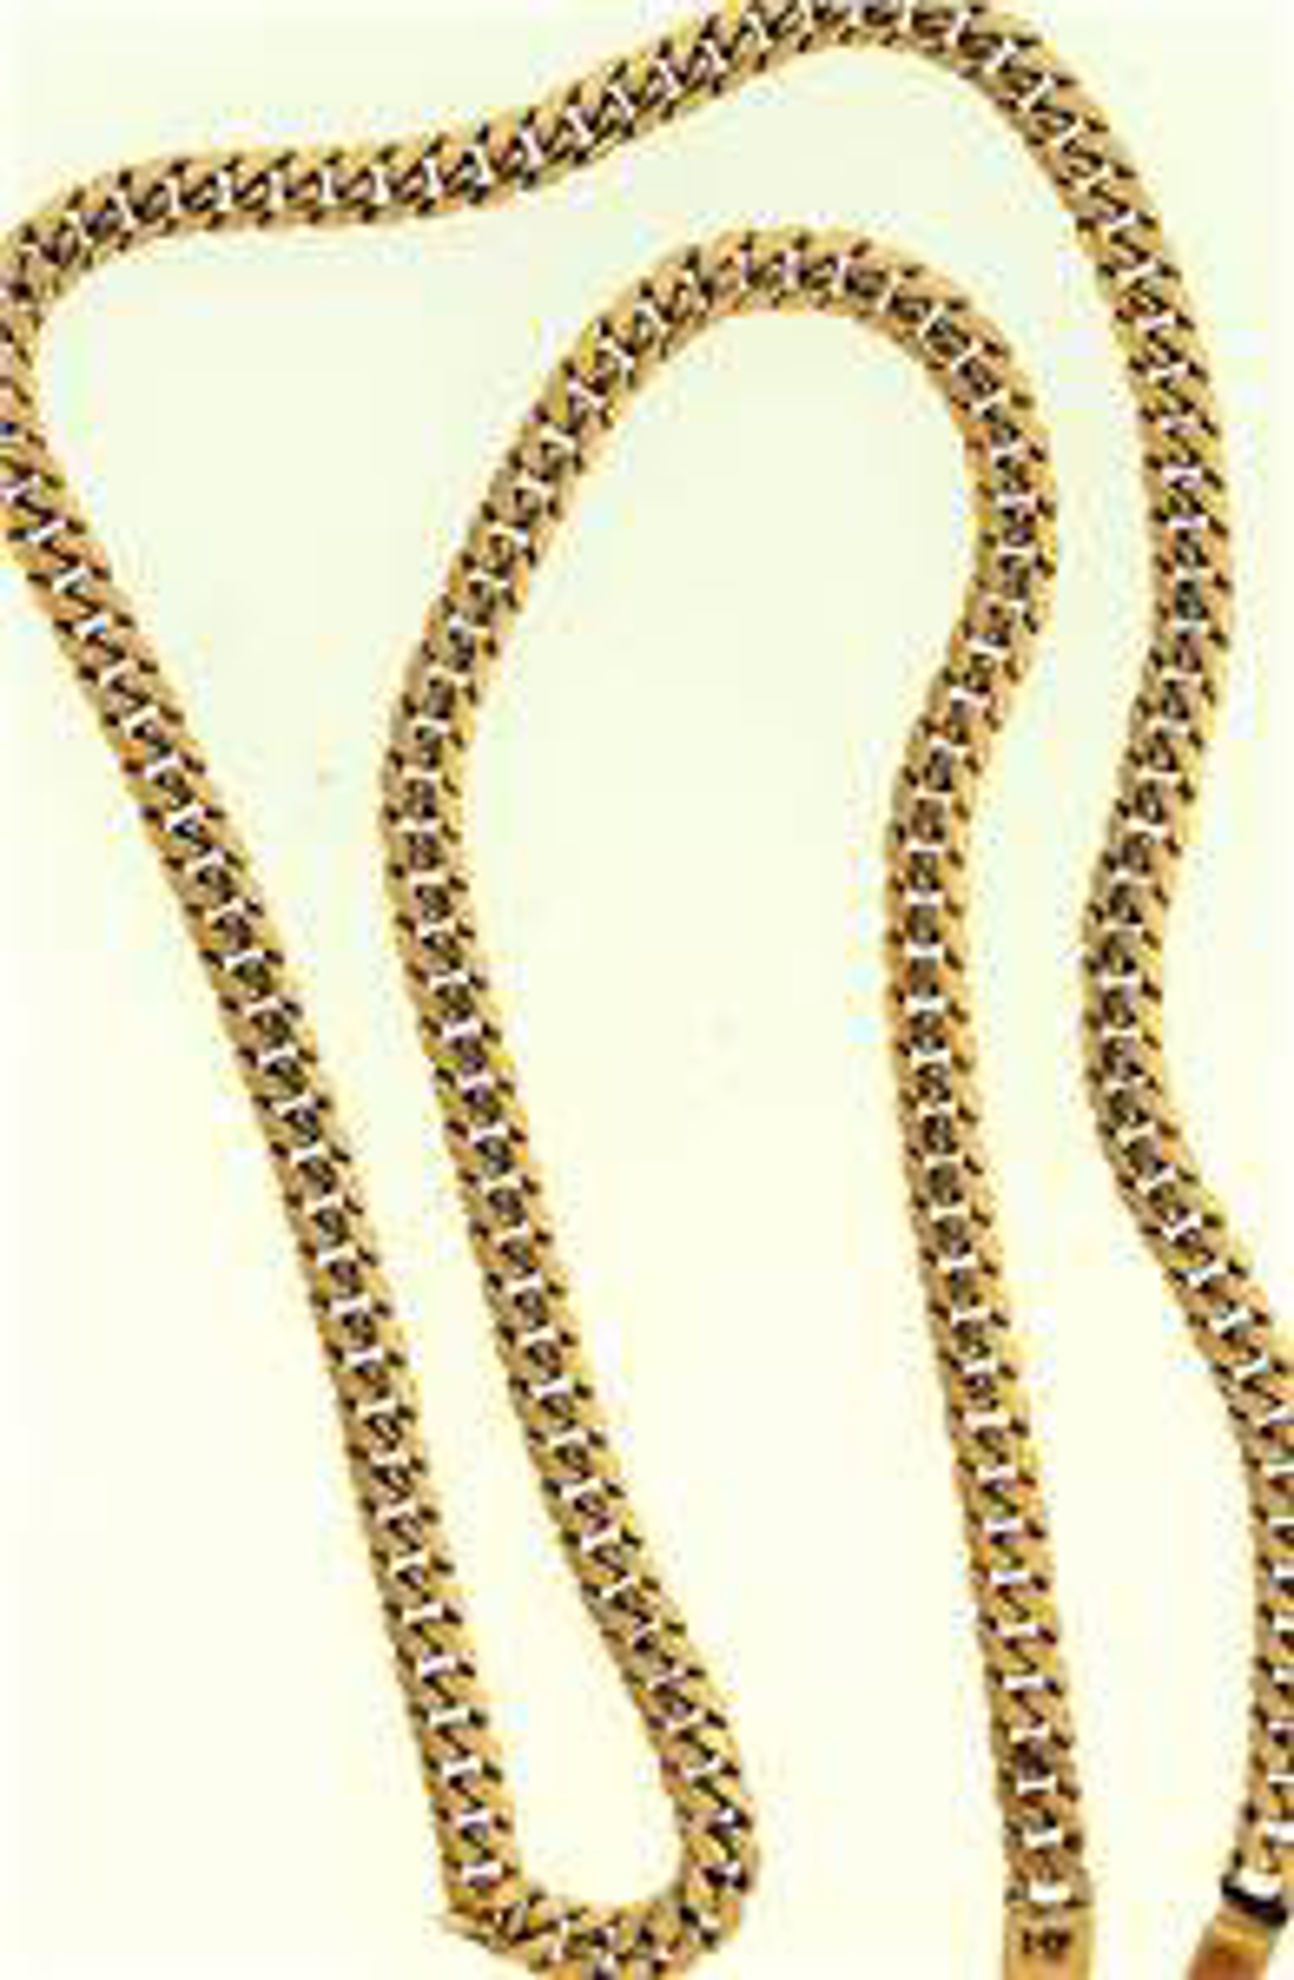 Picture of Chains 14kt-22.4 DWT, 34.8 Grams